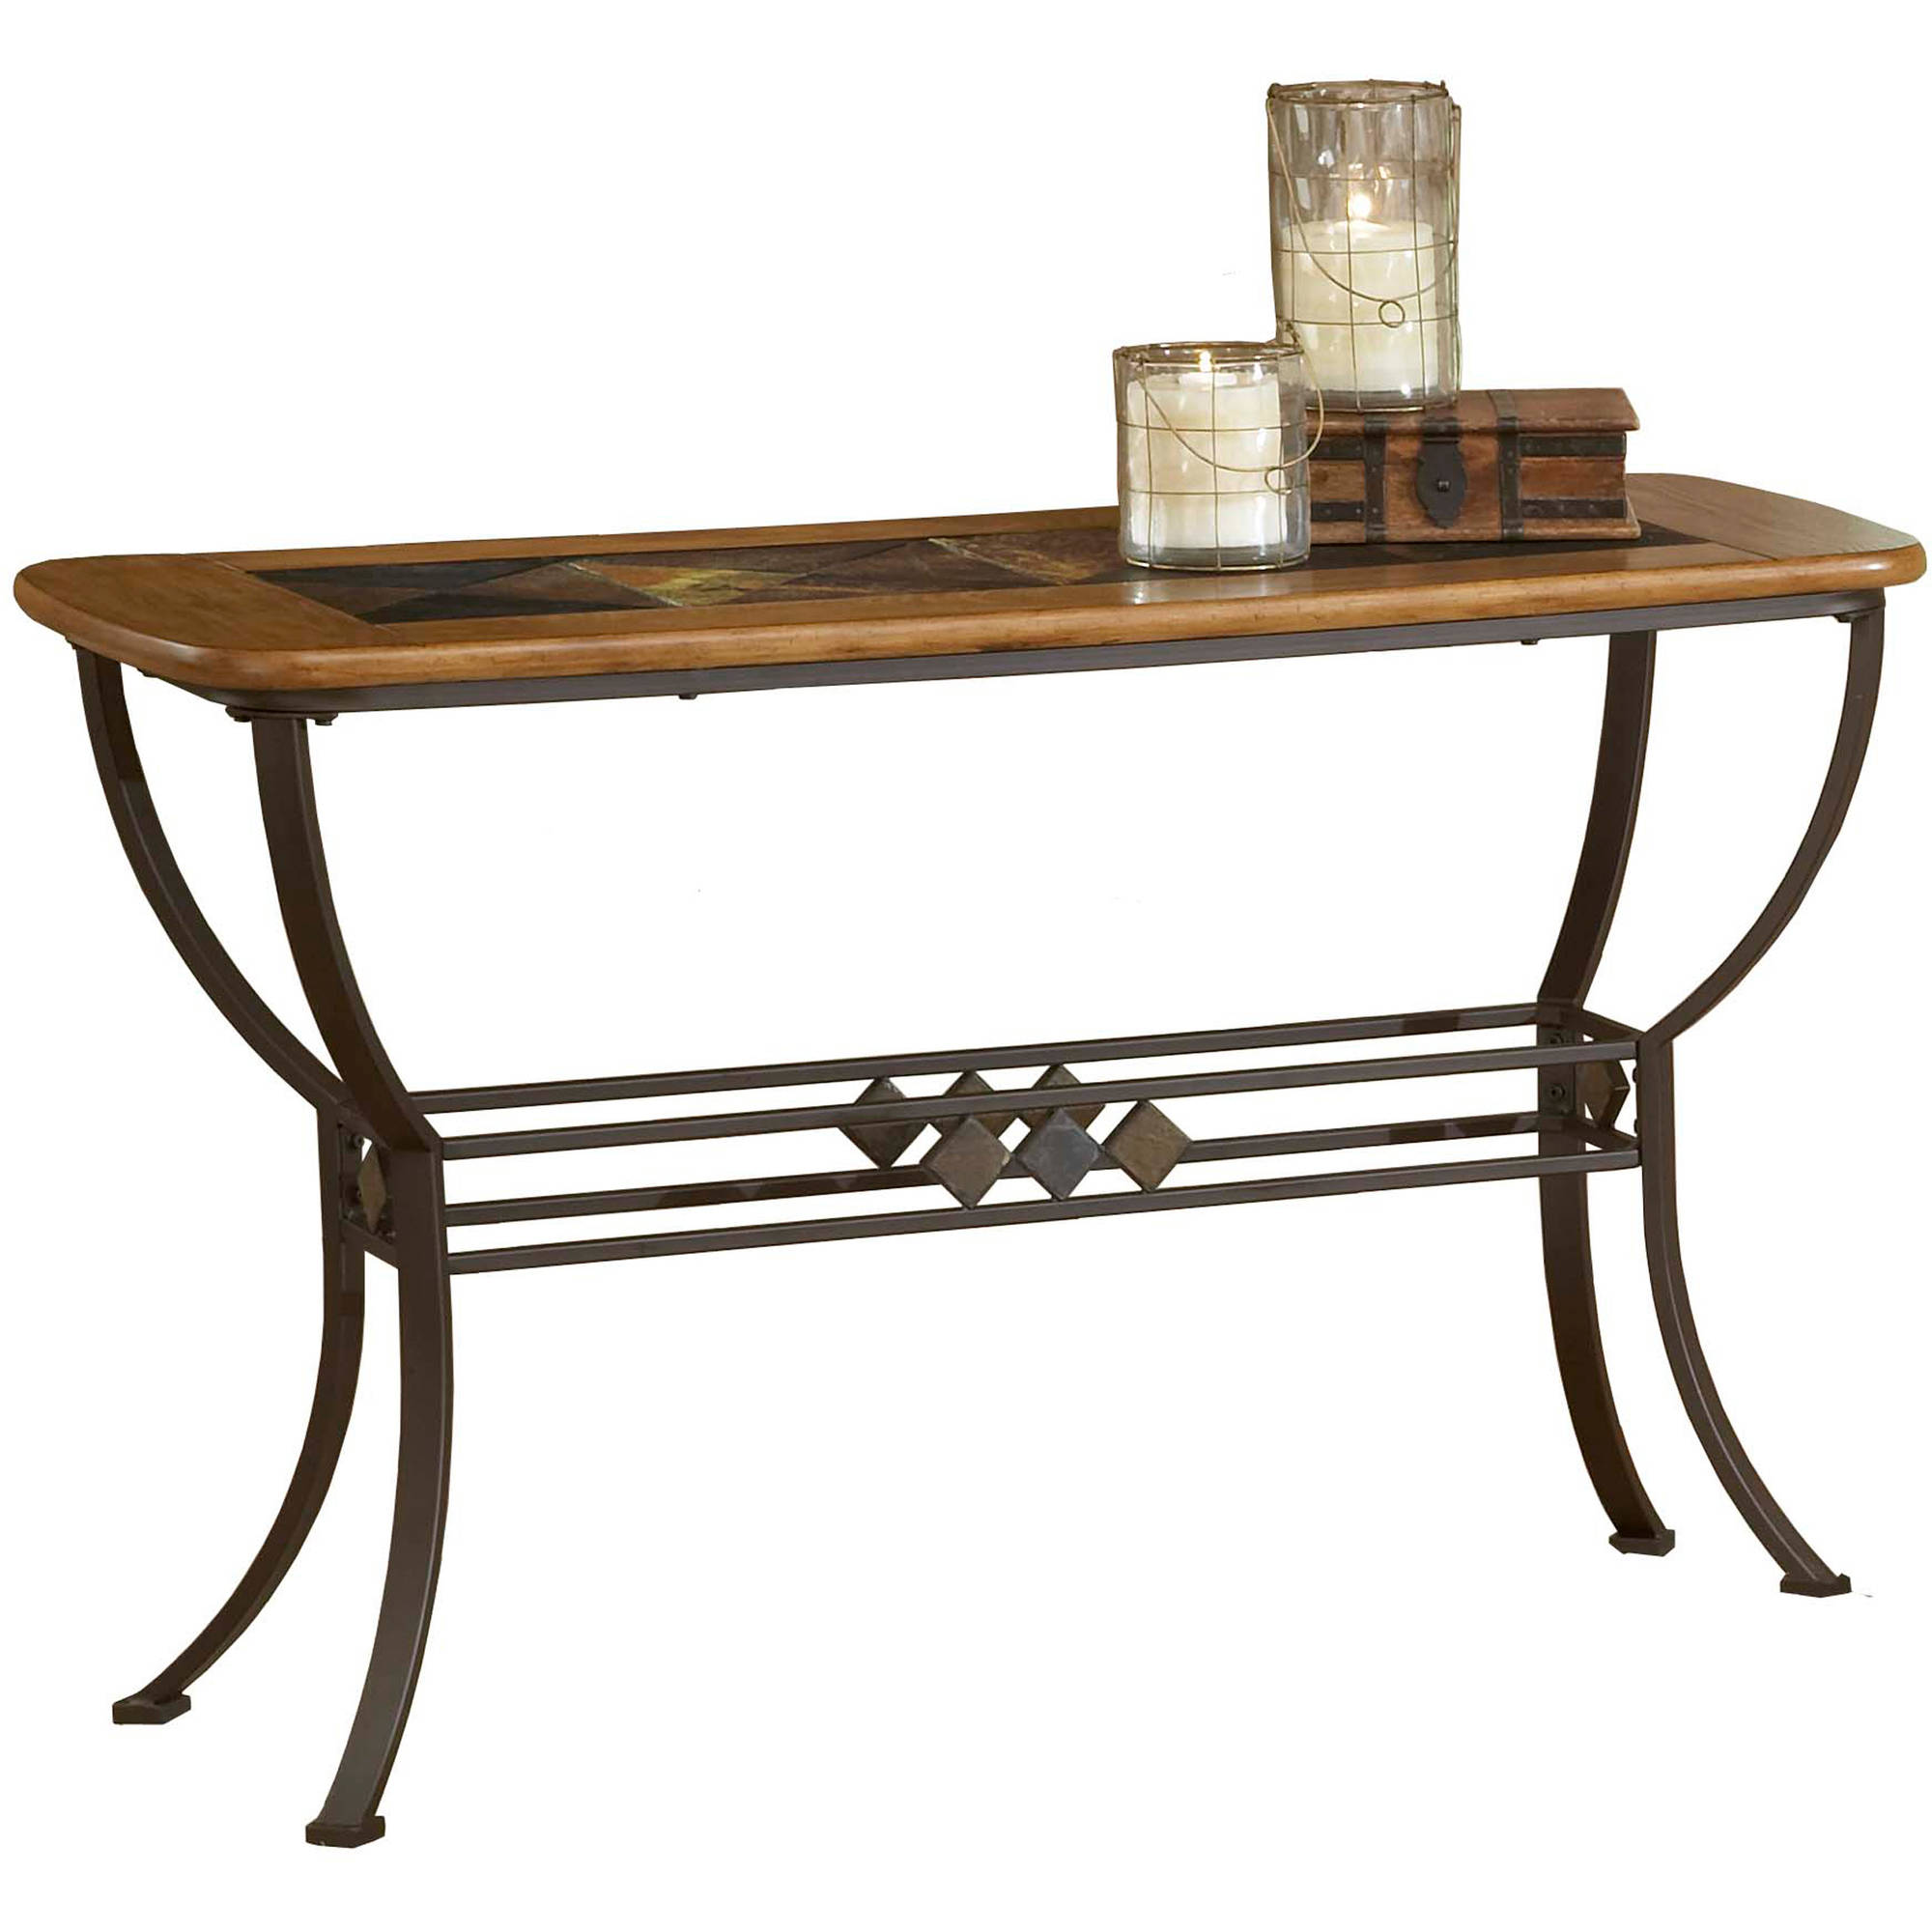 unfinished furniture end tables probably perfect free broyhill accent vantana rectangular table houzz round fingerprint gun safe designer lamps living room island canvas dog crate